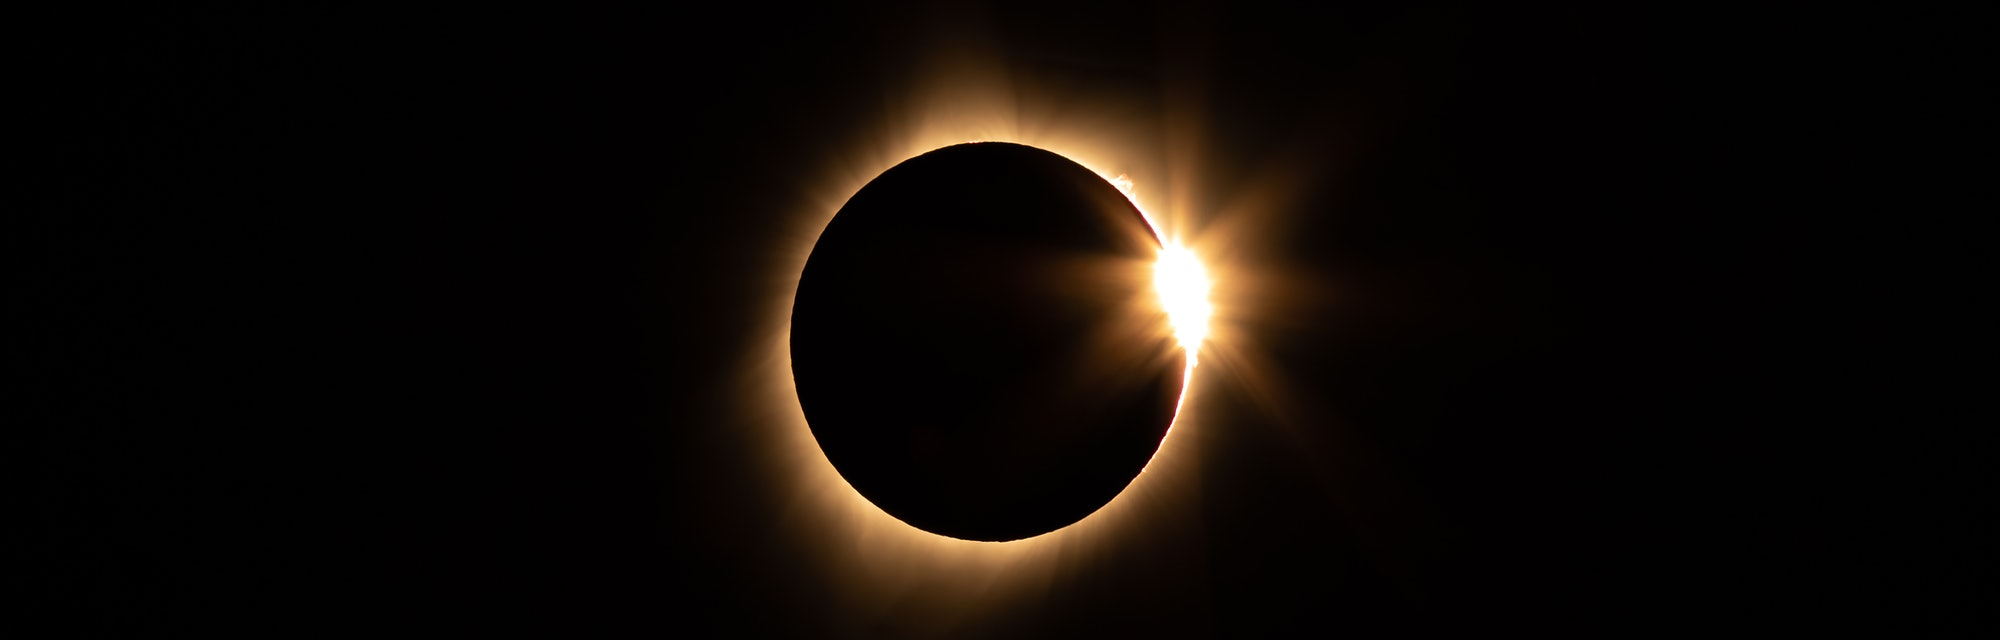 The total solar eclipse on 21 August 2017, as seen from Idaho. About 77 1/2 minutes after first contact. Note the Bailey' Beads.  Yellow filtration for visual interest. (Photo by: Jon G. Fuller, Jr./VW PICS/Universal Images Group via Getty Images)